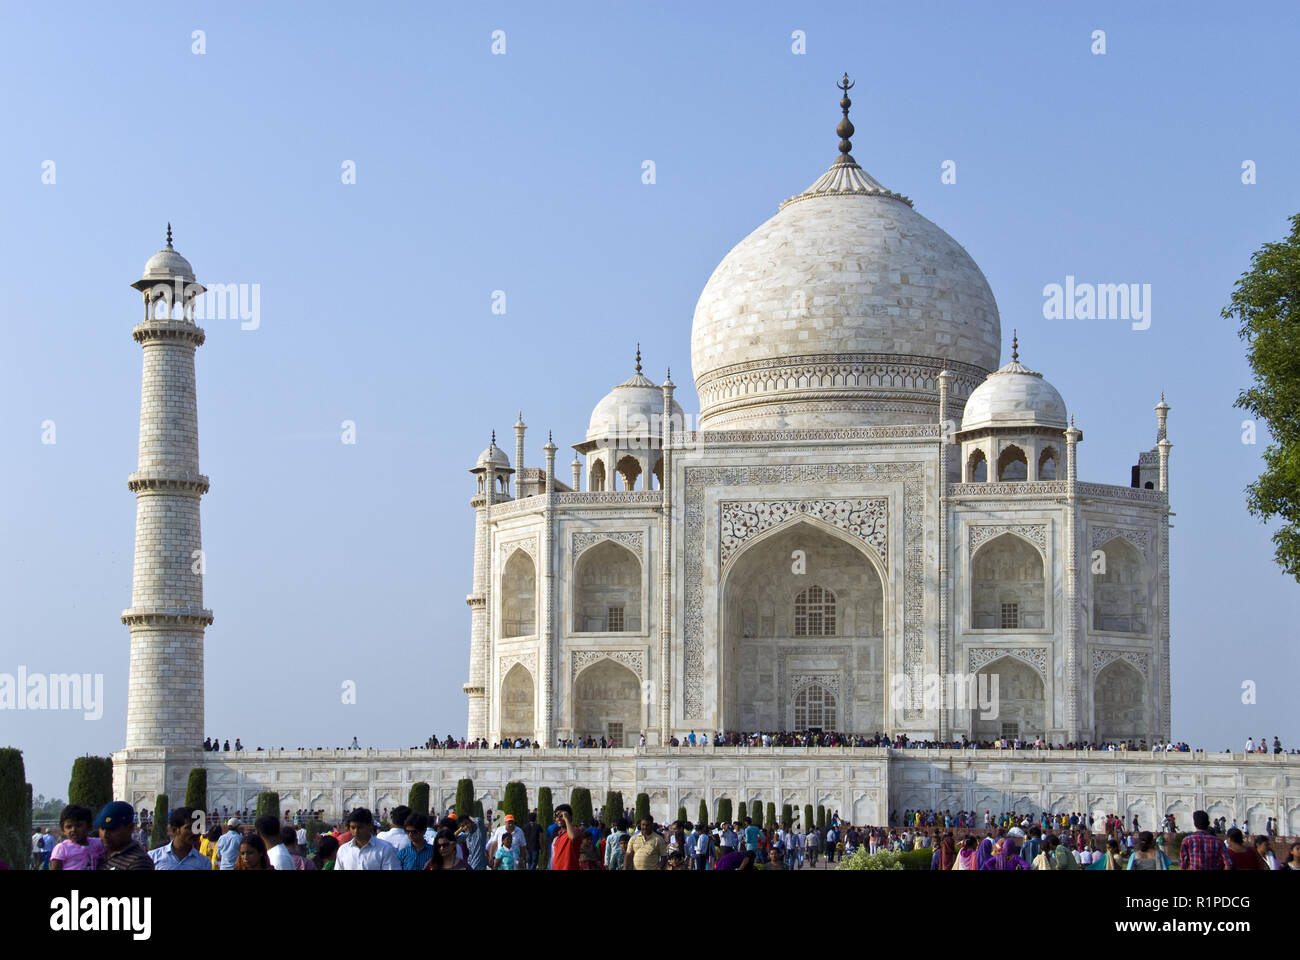 The Taj Mahal is a white marble mausoleum in Agra, India built by Mughal emperor Shah Jahan in memory of his wife, Mumtaz Mahal. - Stock Image